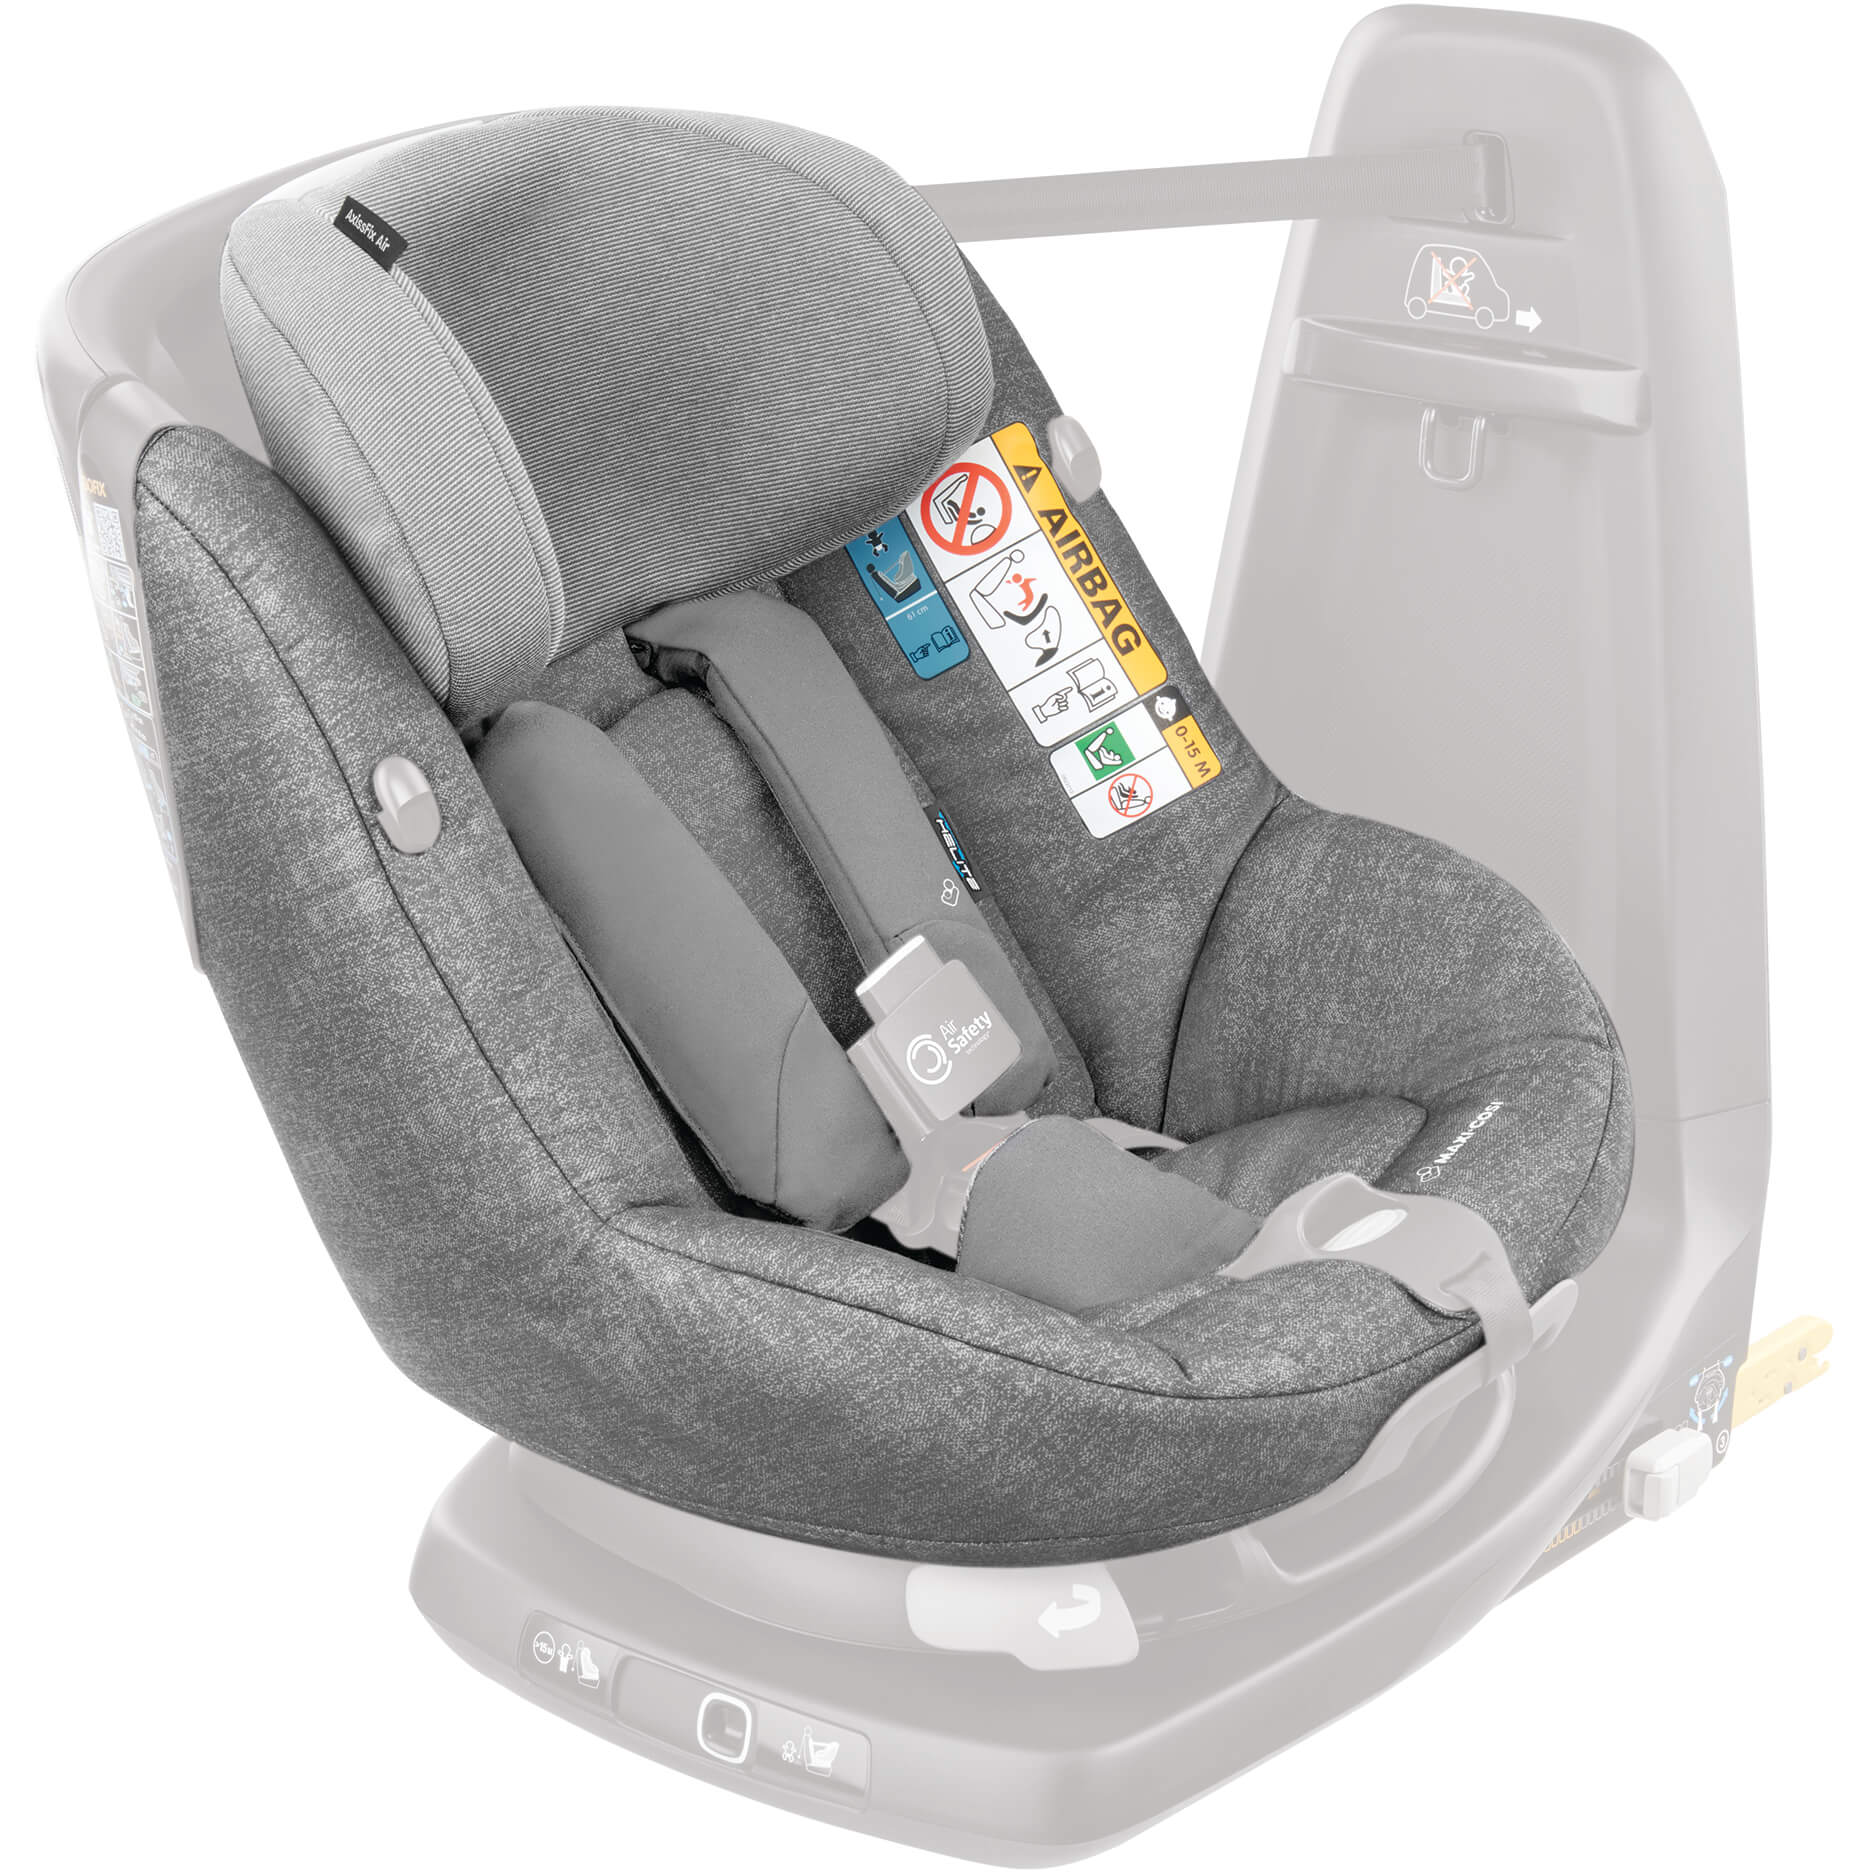 Pleasant Maxi Cosi Seat Cover Nomad Grey For Axissfix Air Child Seat Andrewgaddart Wooden Chair Designs For Living Room Andrewgaddartcom